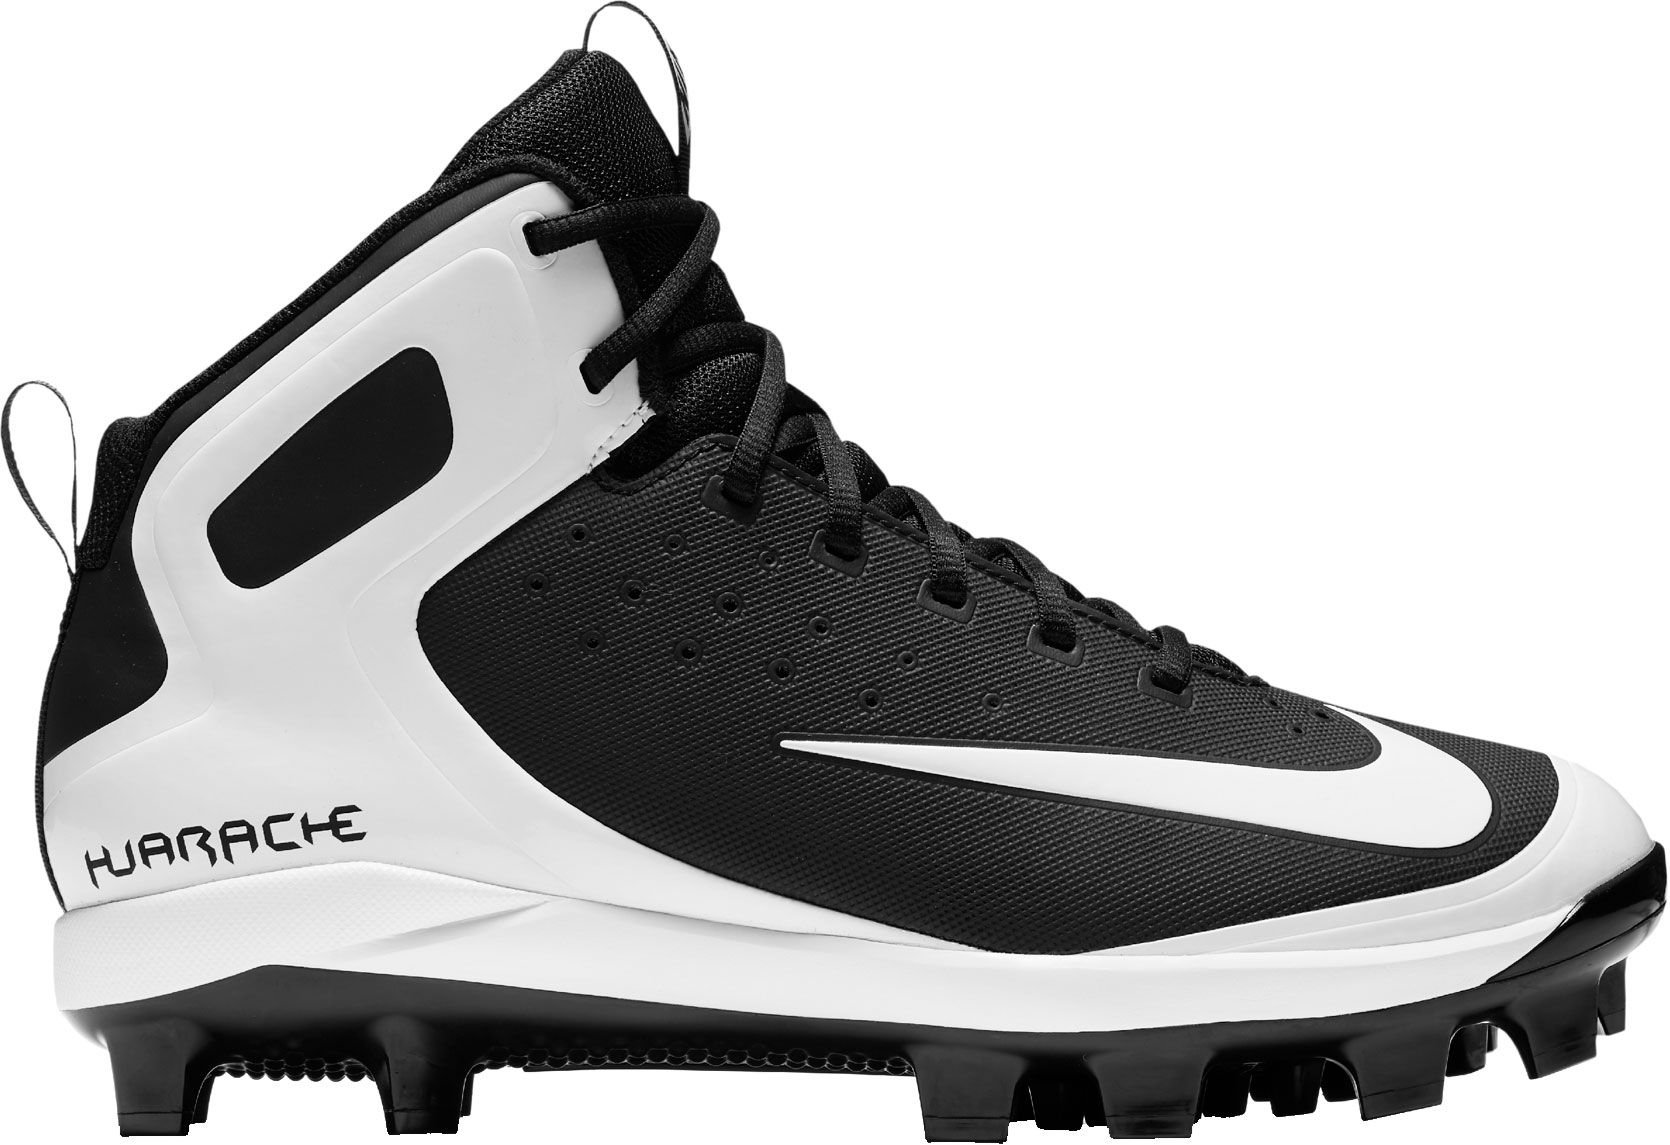 Nike Men's Alpha Huarache Pro Mid Baseball Cleats (Black/White, 8.5 D(M) US) by Nike